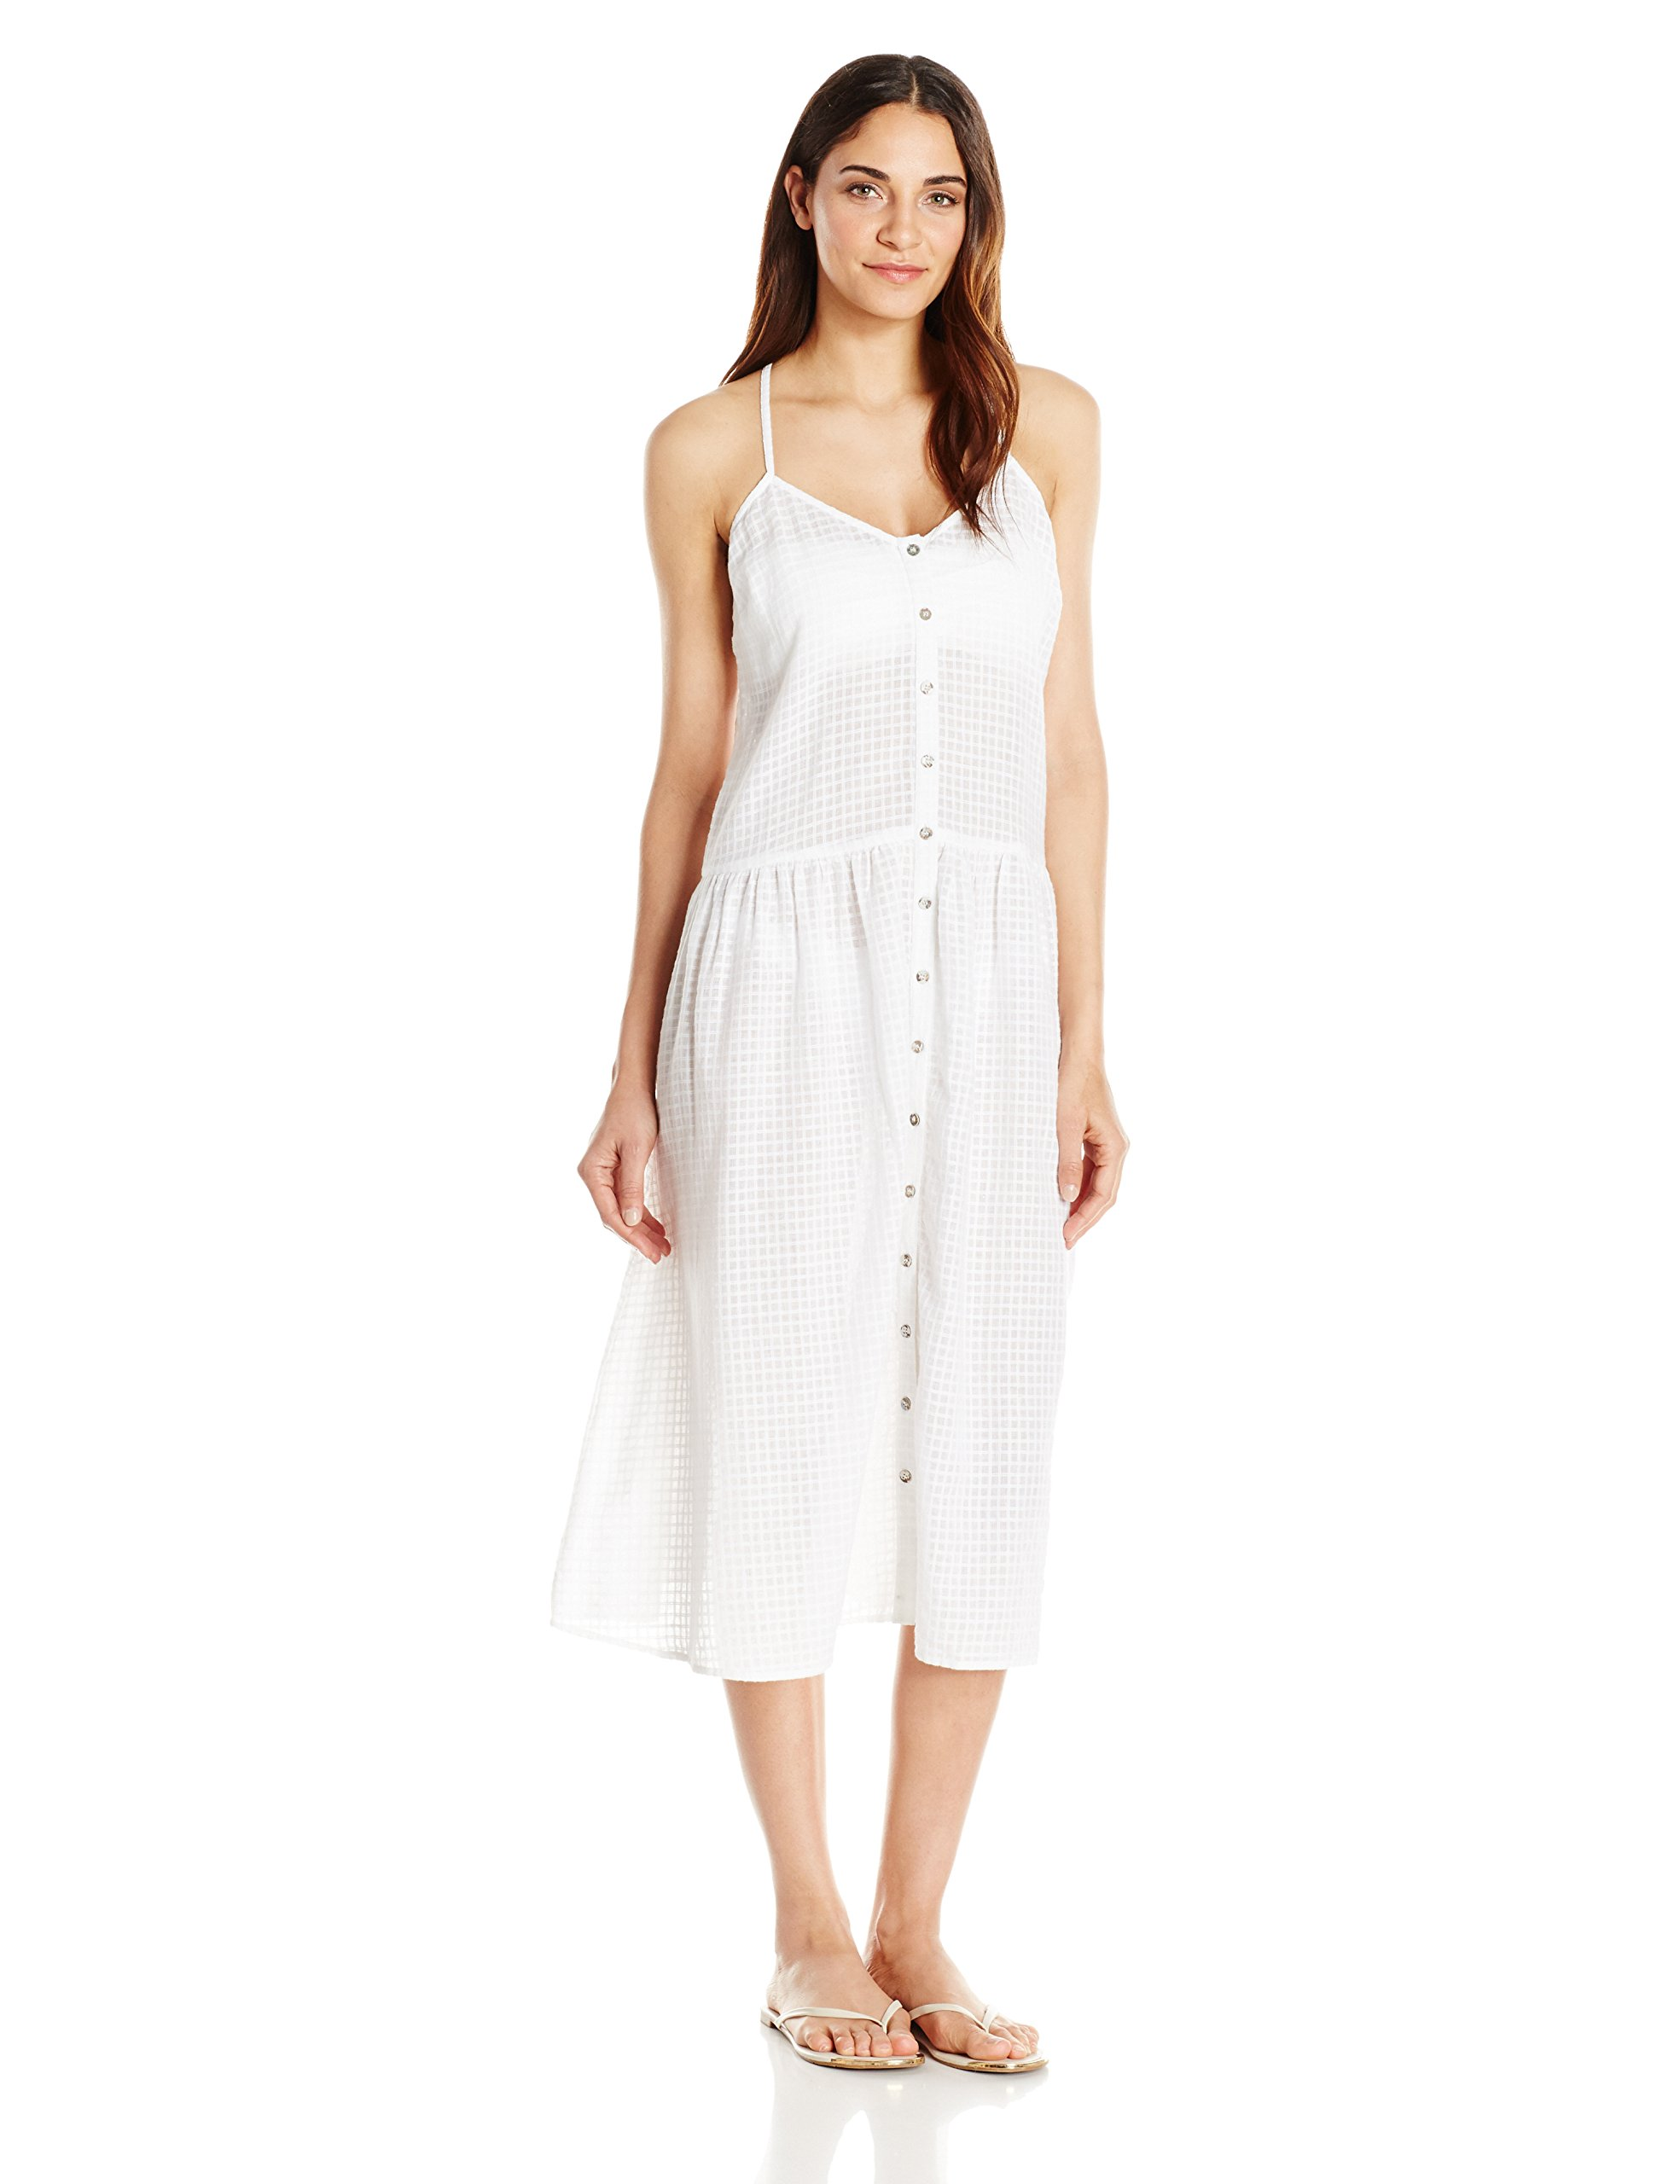 Mara Hoffman Women's Checkered Gauze Drop Waist Placket Midi Dress Cover up, White, M